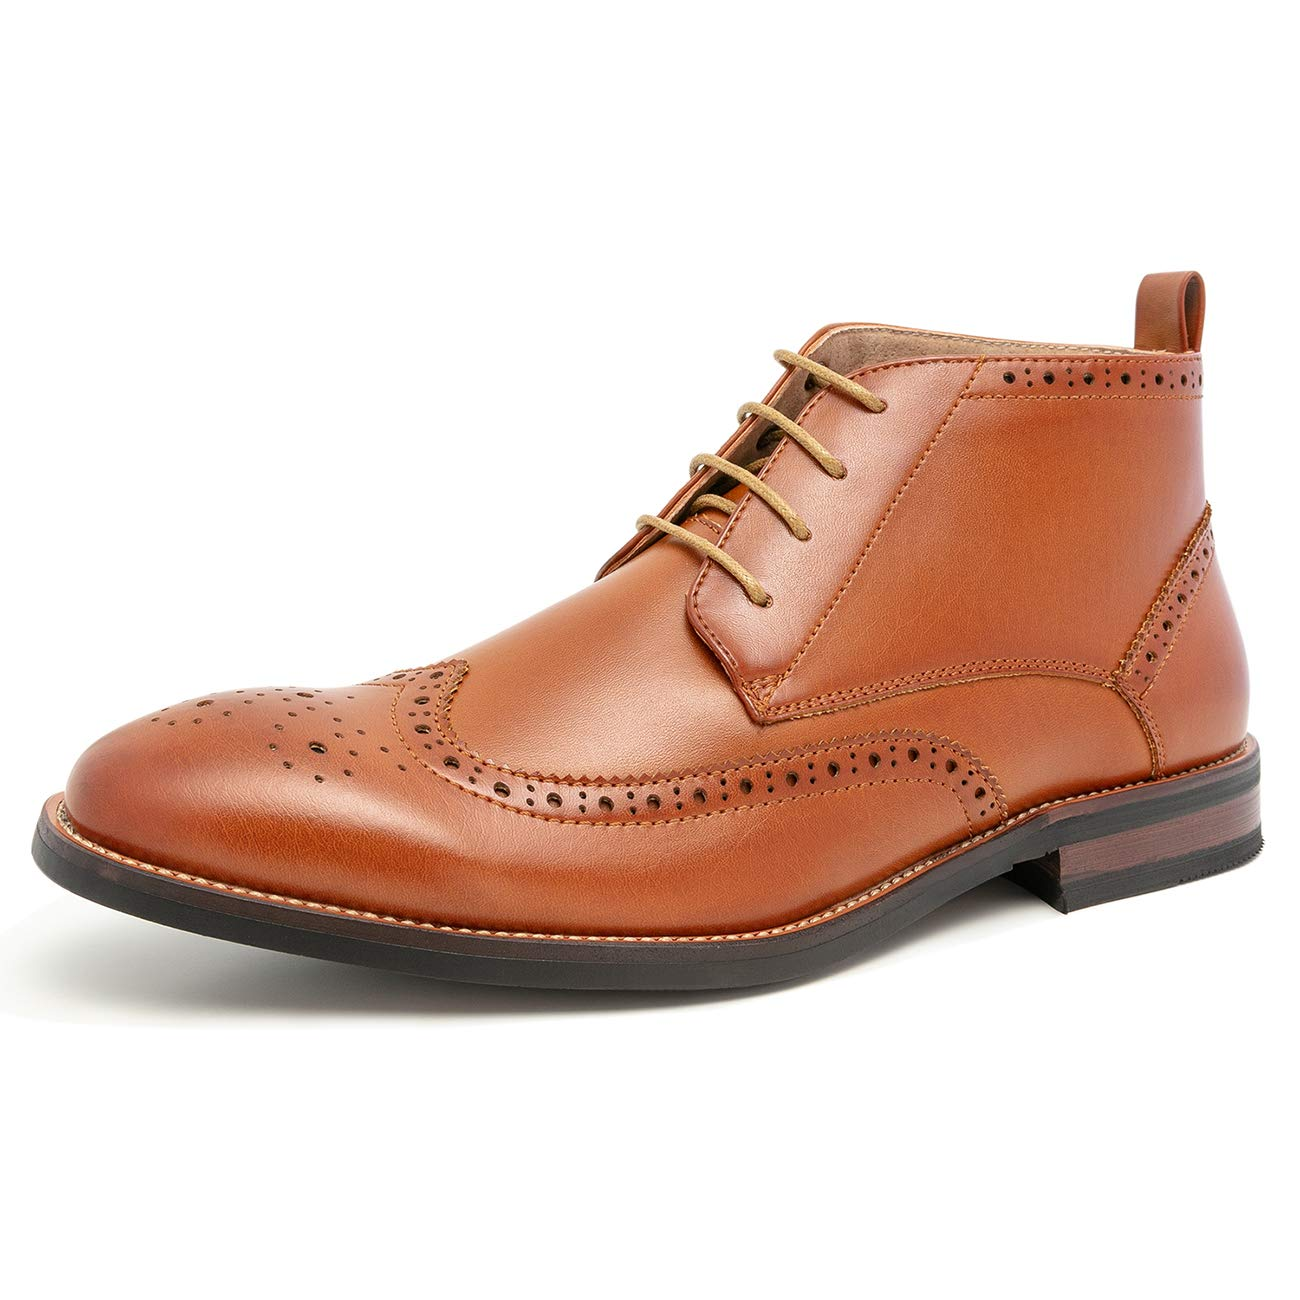 WULFUL Mens Leather Lined Oxfords Ankle Boots Tan 12 by WULFUL